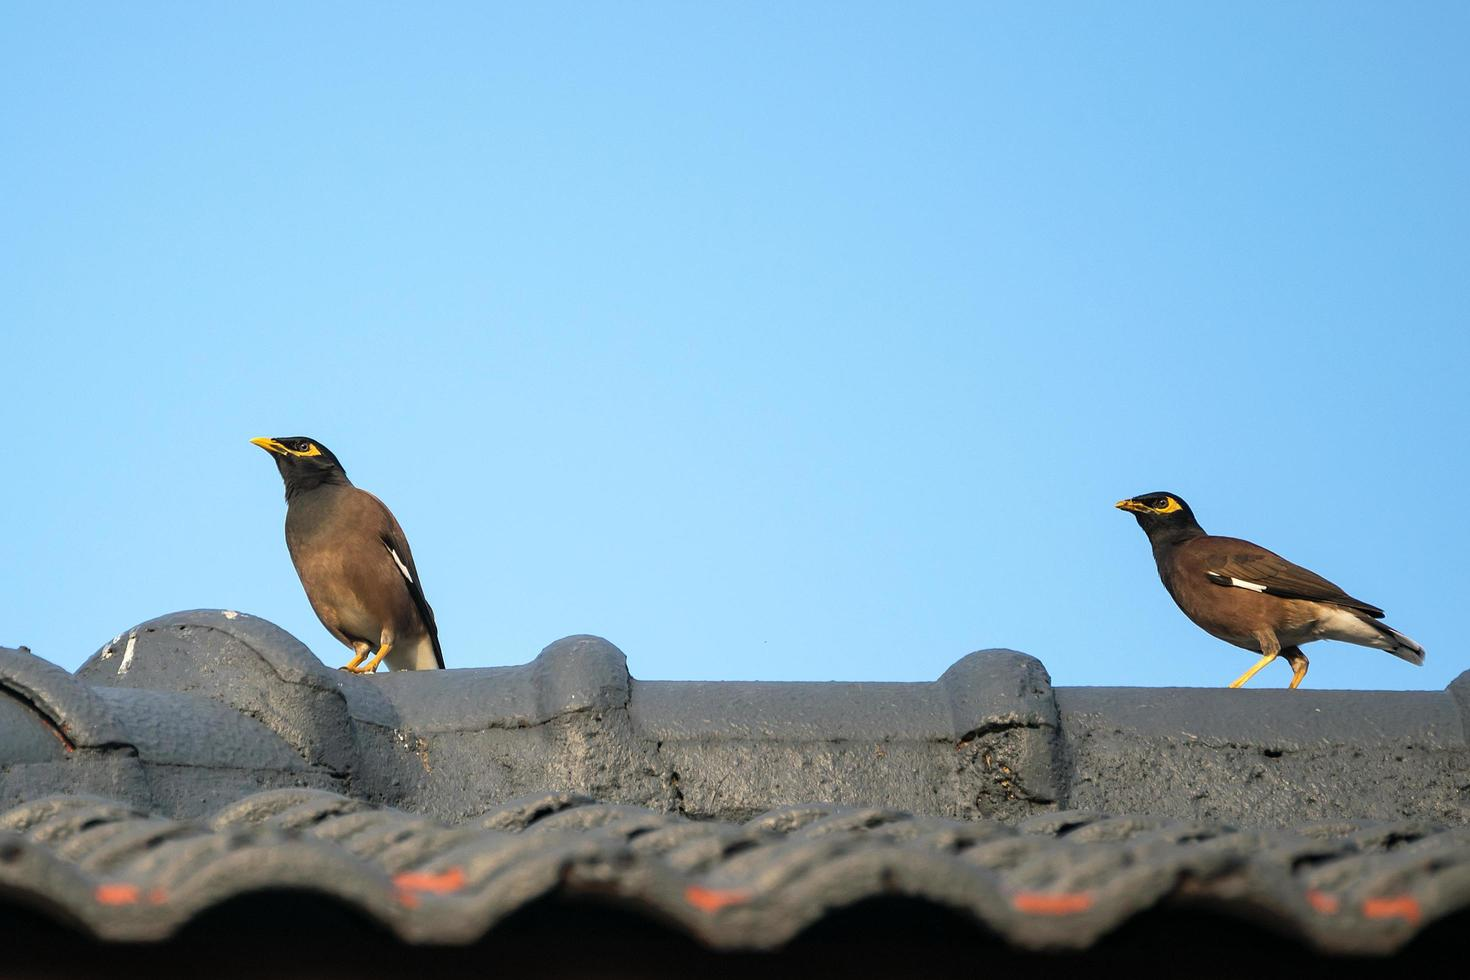 Two birds perched on a roof photo